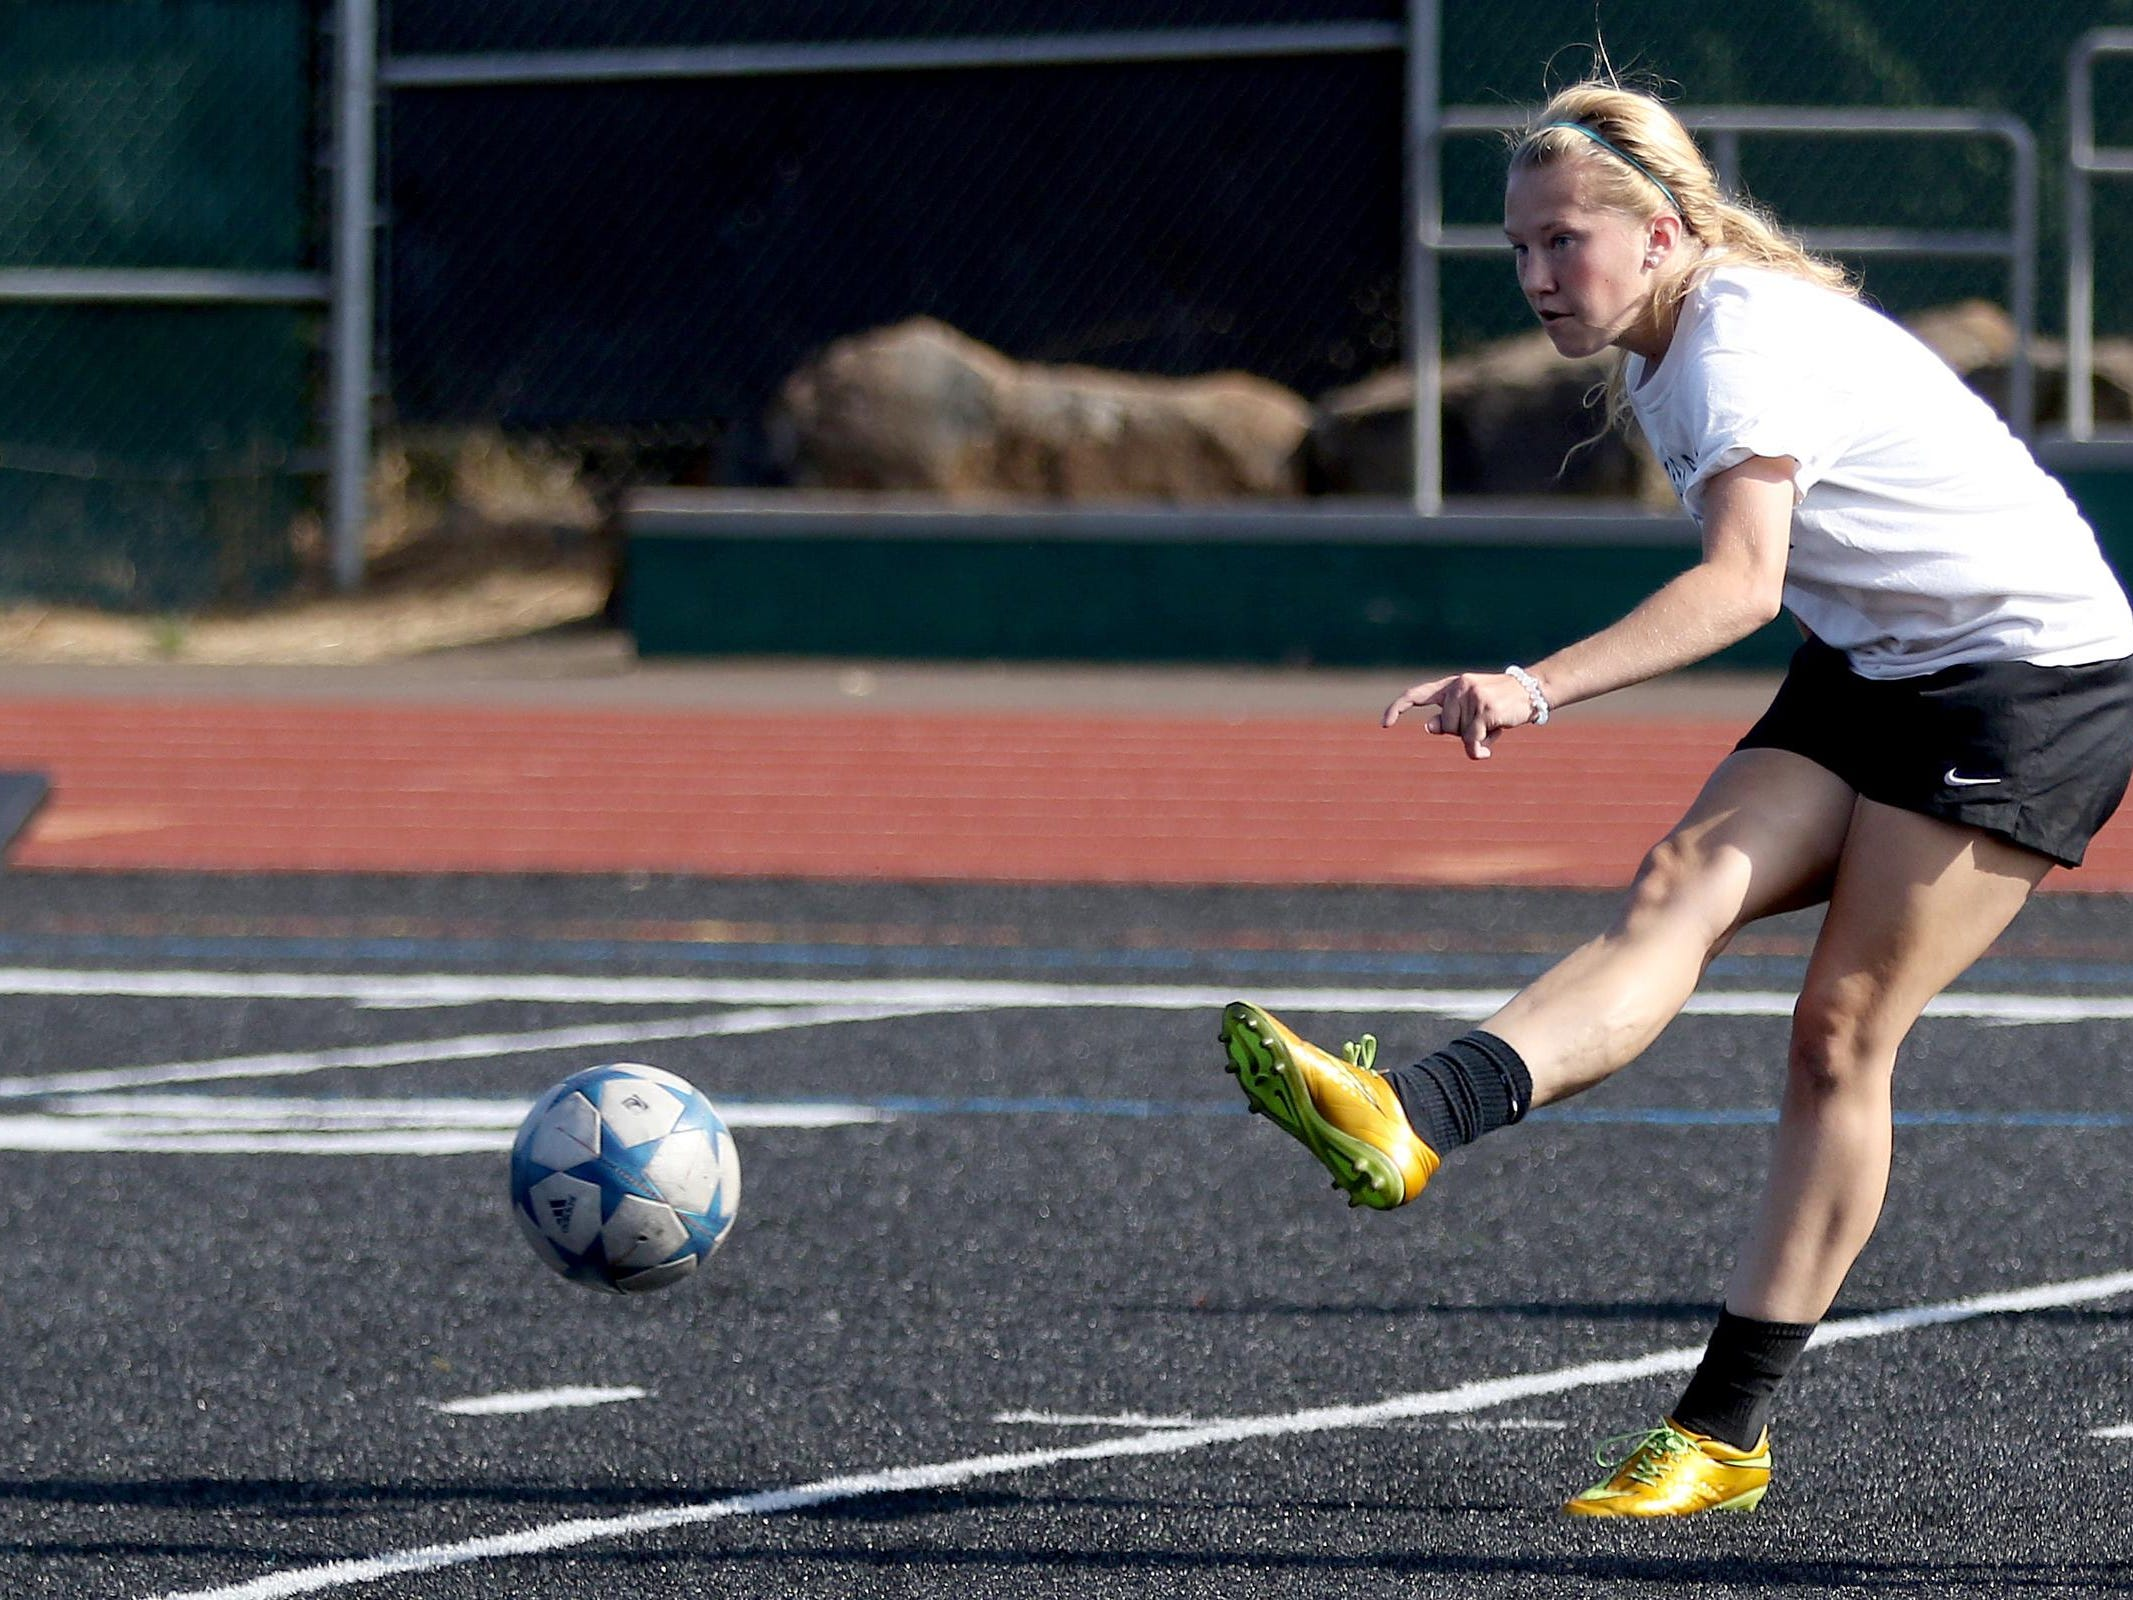 Senior Anna Norrenberns kicks the ball during girl's soccer practice at West Salem High School on Thursday, Aug. 27, 2015.